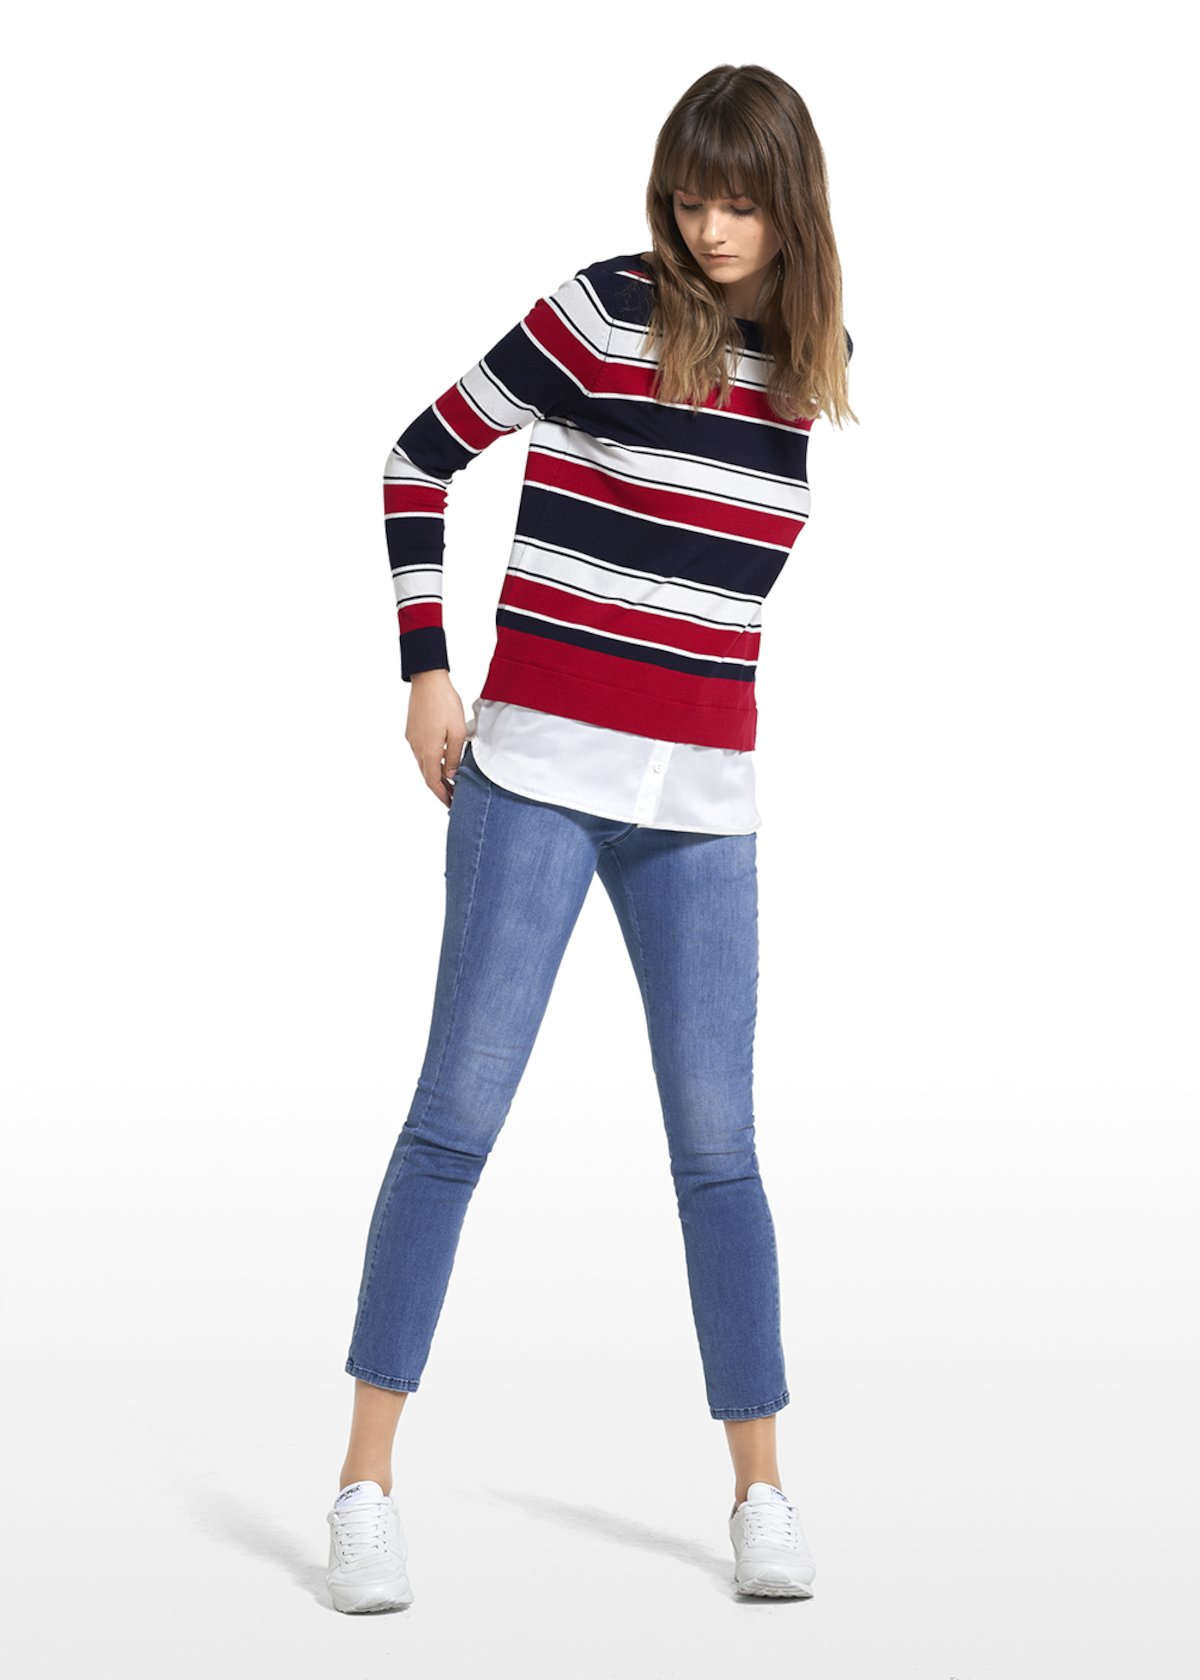 Maddy jersey with tricolor stripes pattern - White / Blue Stripes - Woman